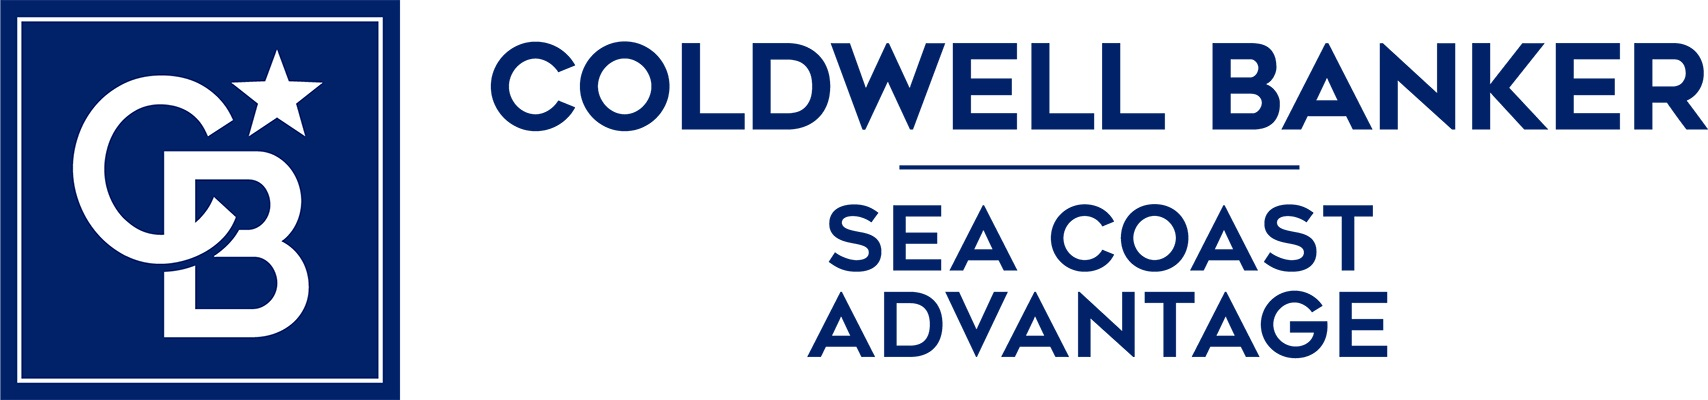 Michael Tausch - Coldwell Banker Sea Coast Advantage Realty Logo